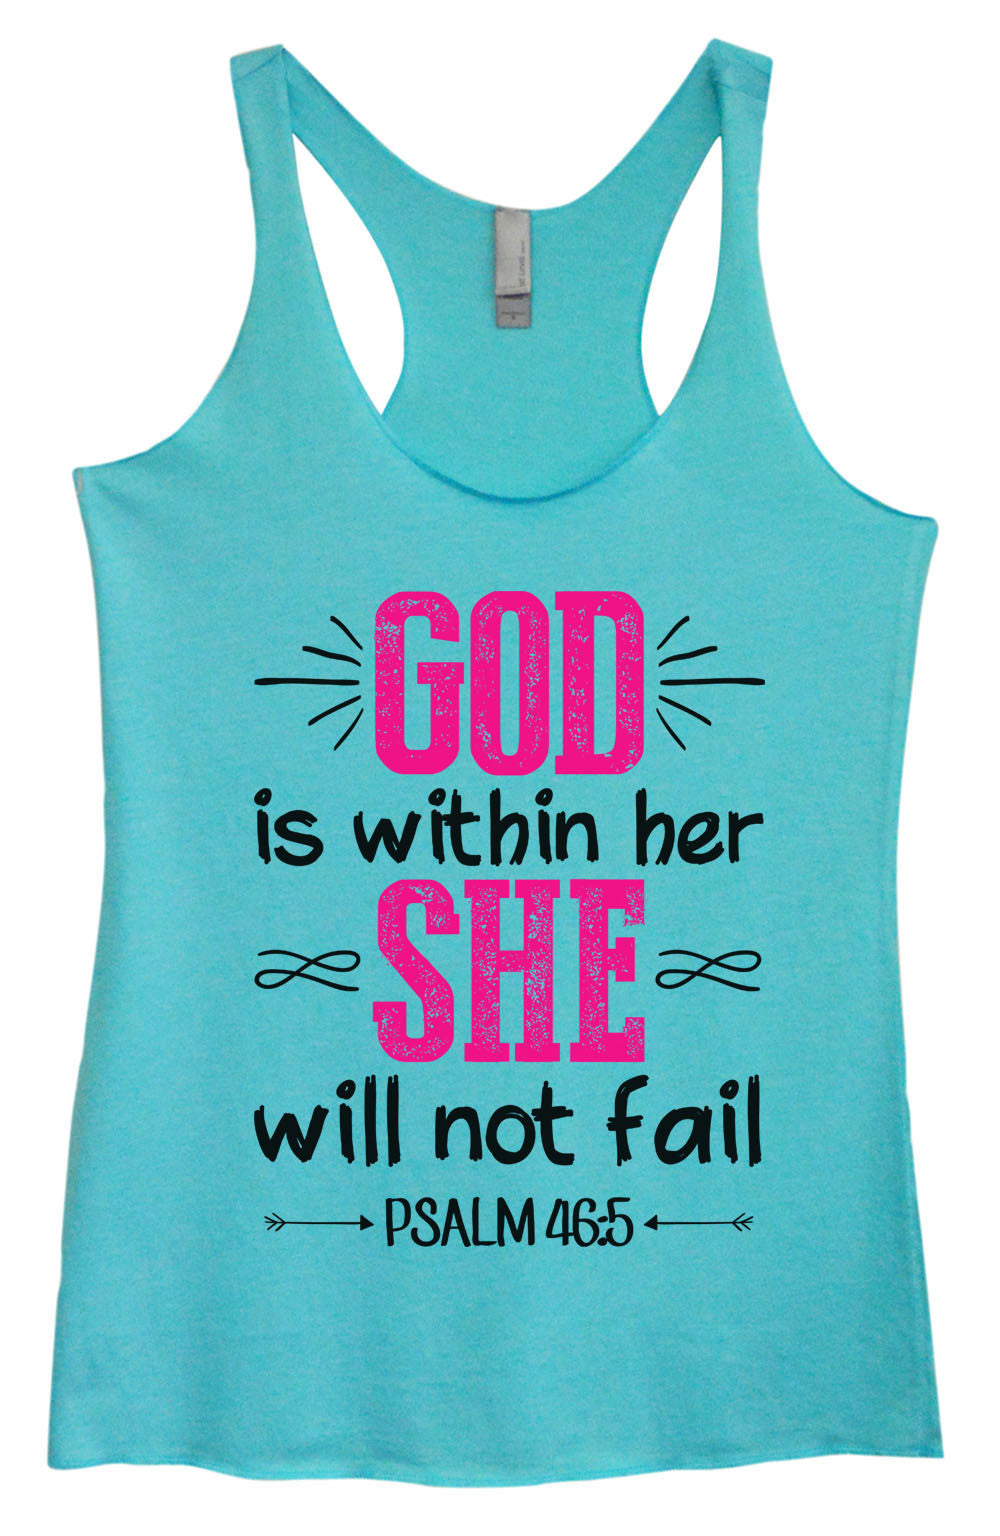 Womens Fashion Triblend Tank Top - God Is Within Her She Will Not Fail Psalm 46:5 - Tri-1476 - Funny Shirts Tank Tops Burnouts and Triblends  - 4